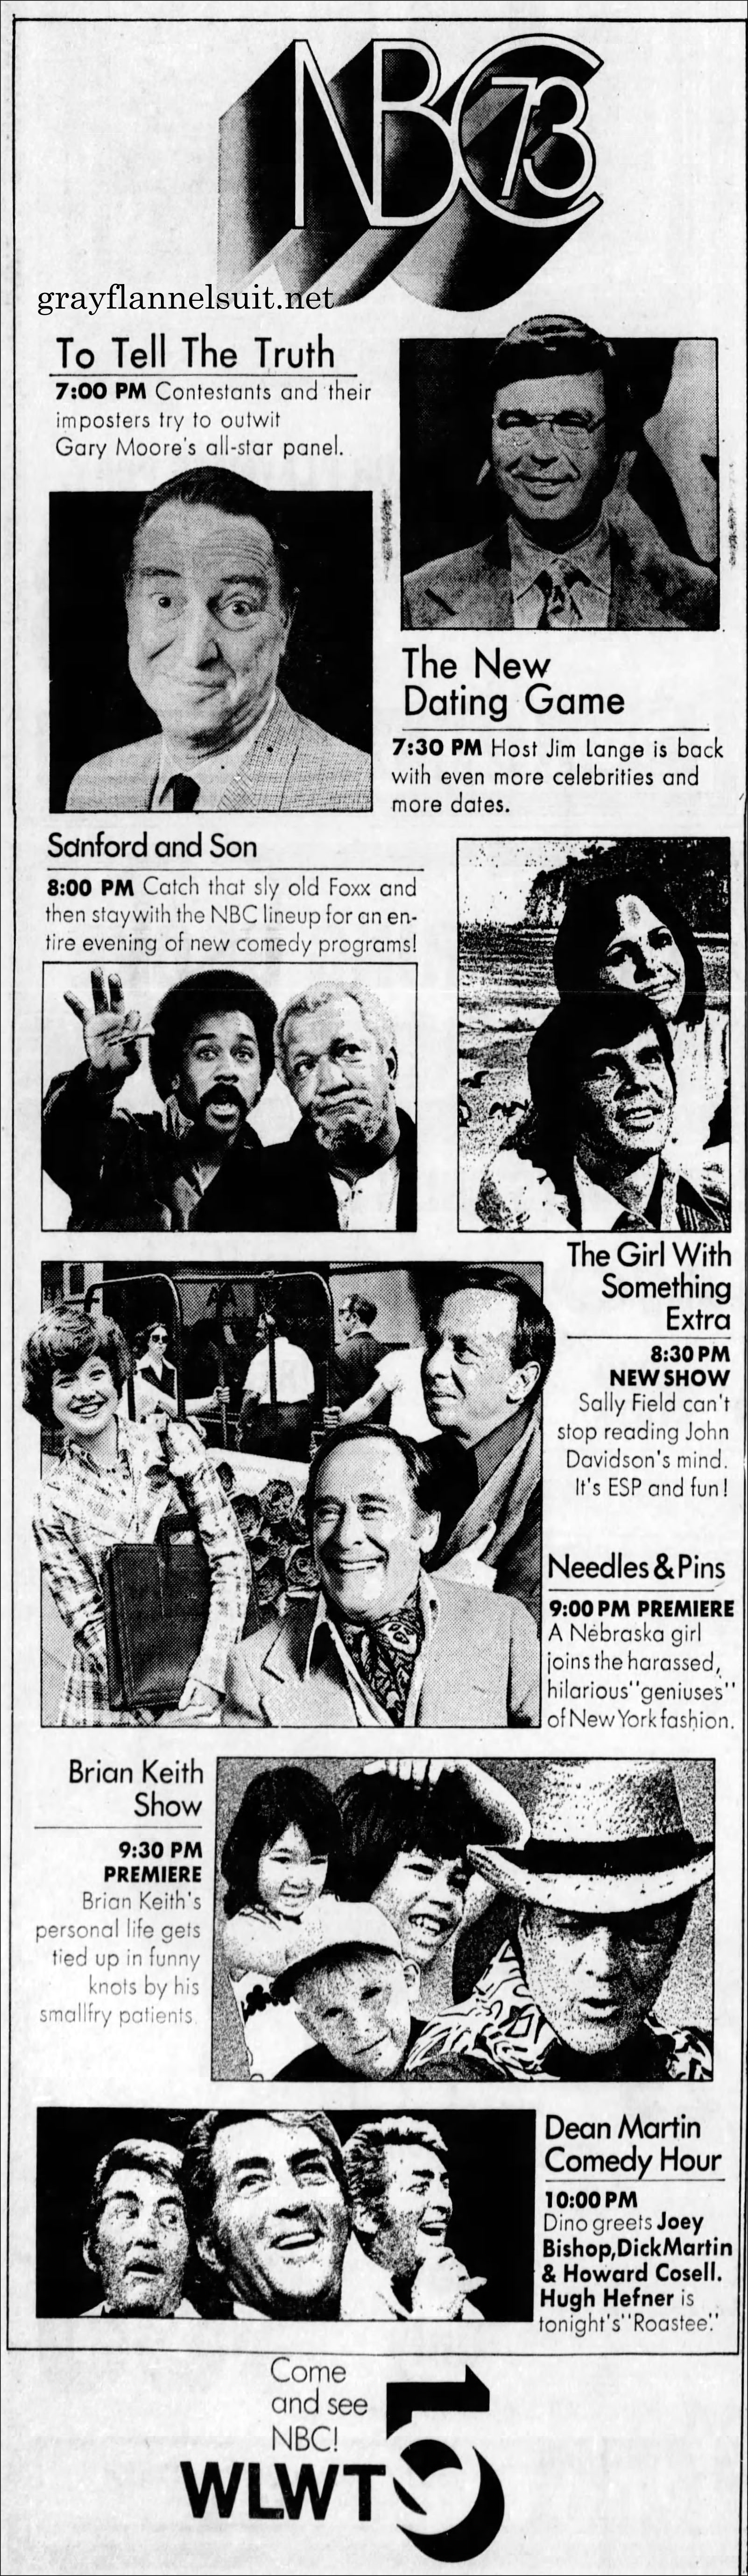 Tv Listings Flashback Nbc Prime Time September 21 1973 Grayflannelsuit Net